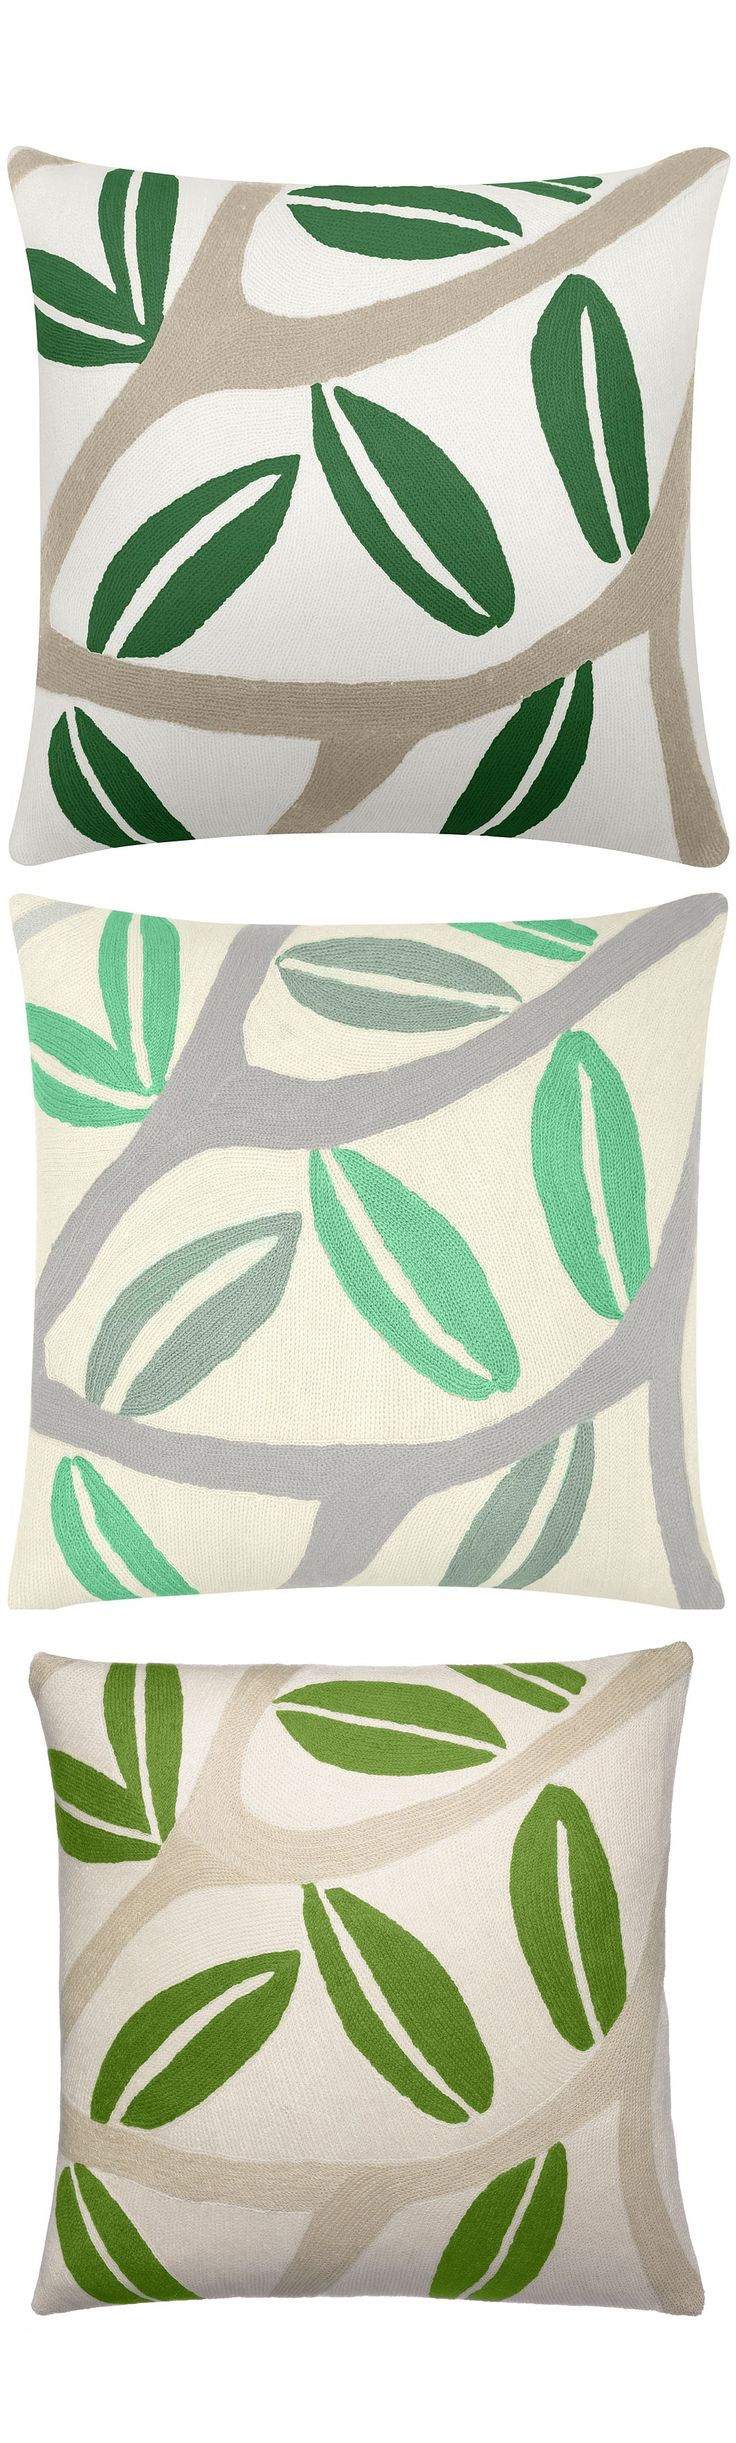 Decorative Pillows For Bed Green : 17 Best images about Green Pillows on Pinterest Green pillow covers, Cushions and Pinterest pin